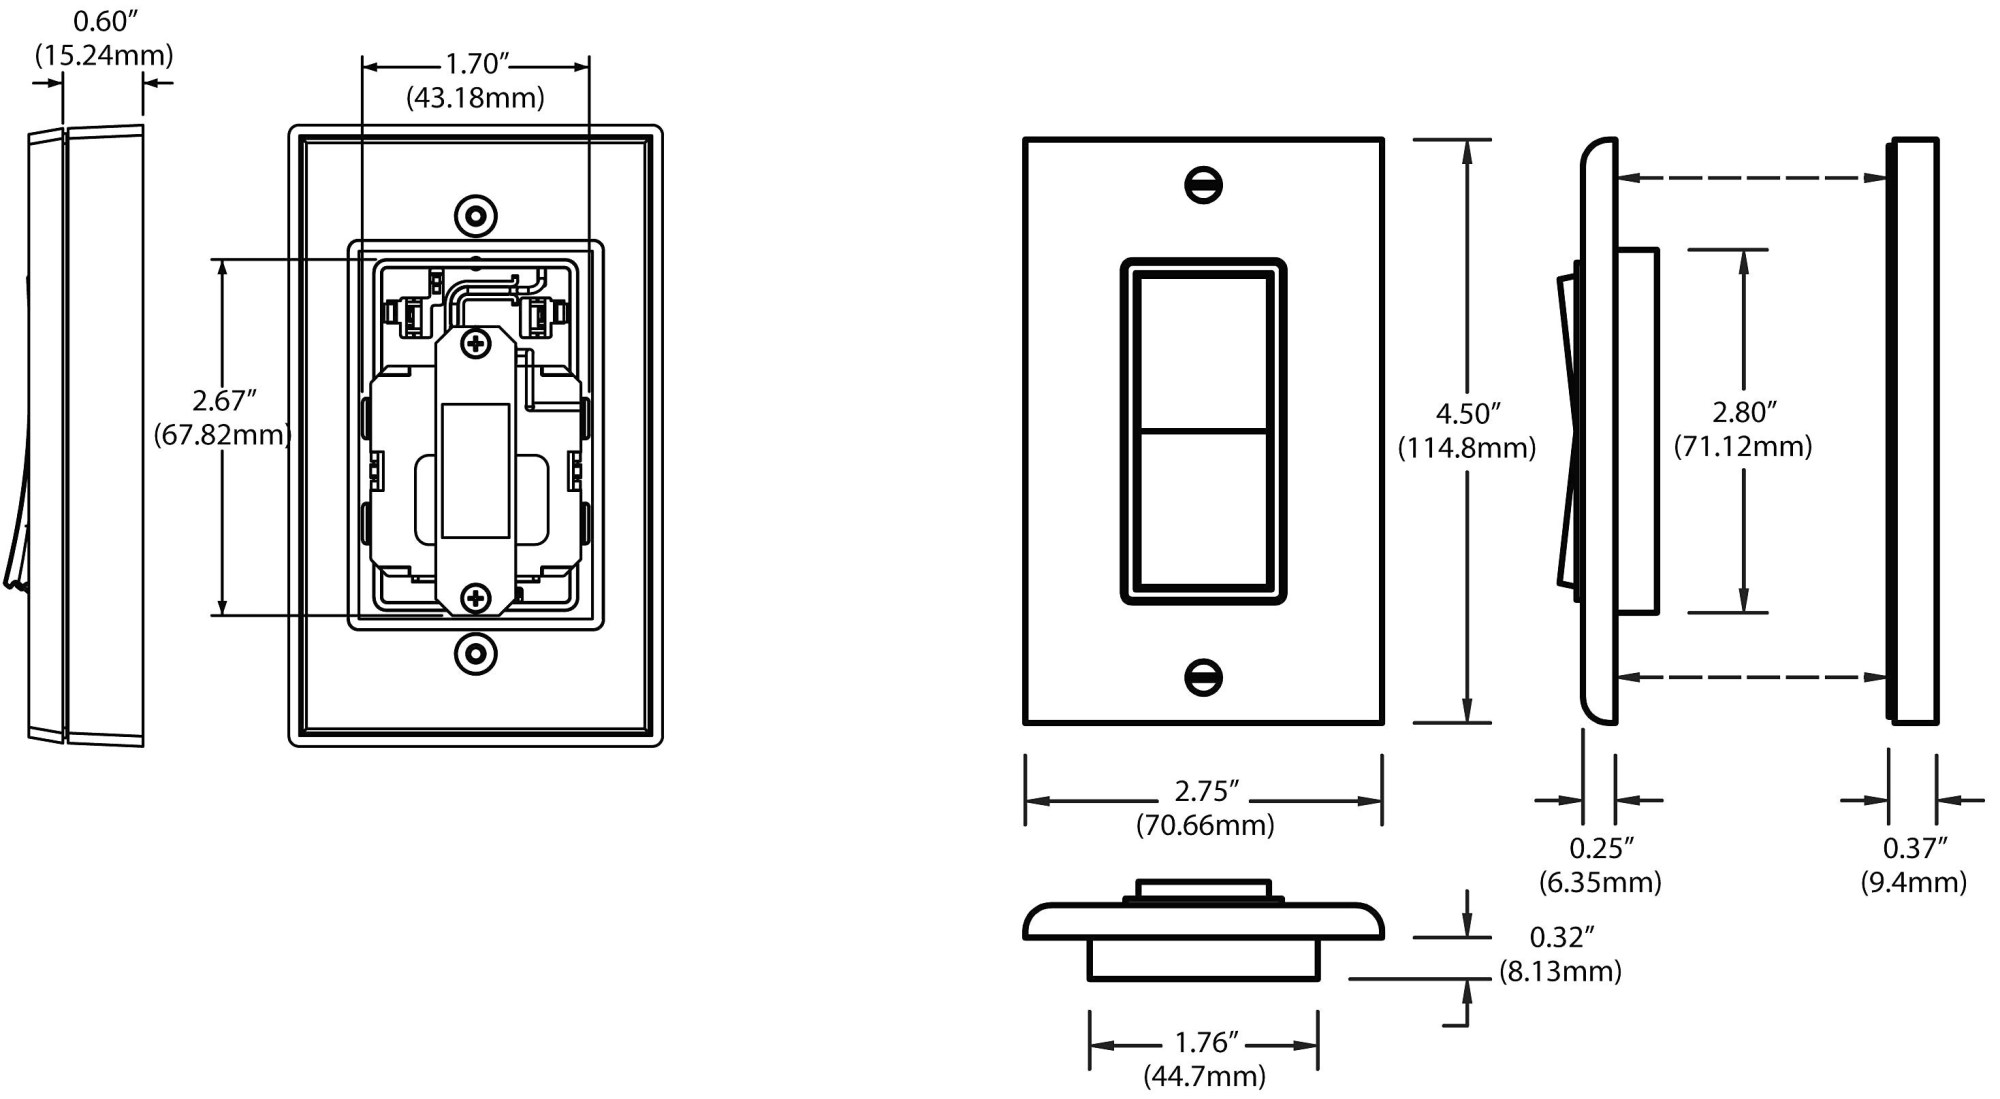 hight resolution of double decora light switch wiring diagram wiring diagram double decora light switch wiring diagram wiring diagram